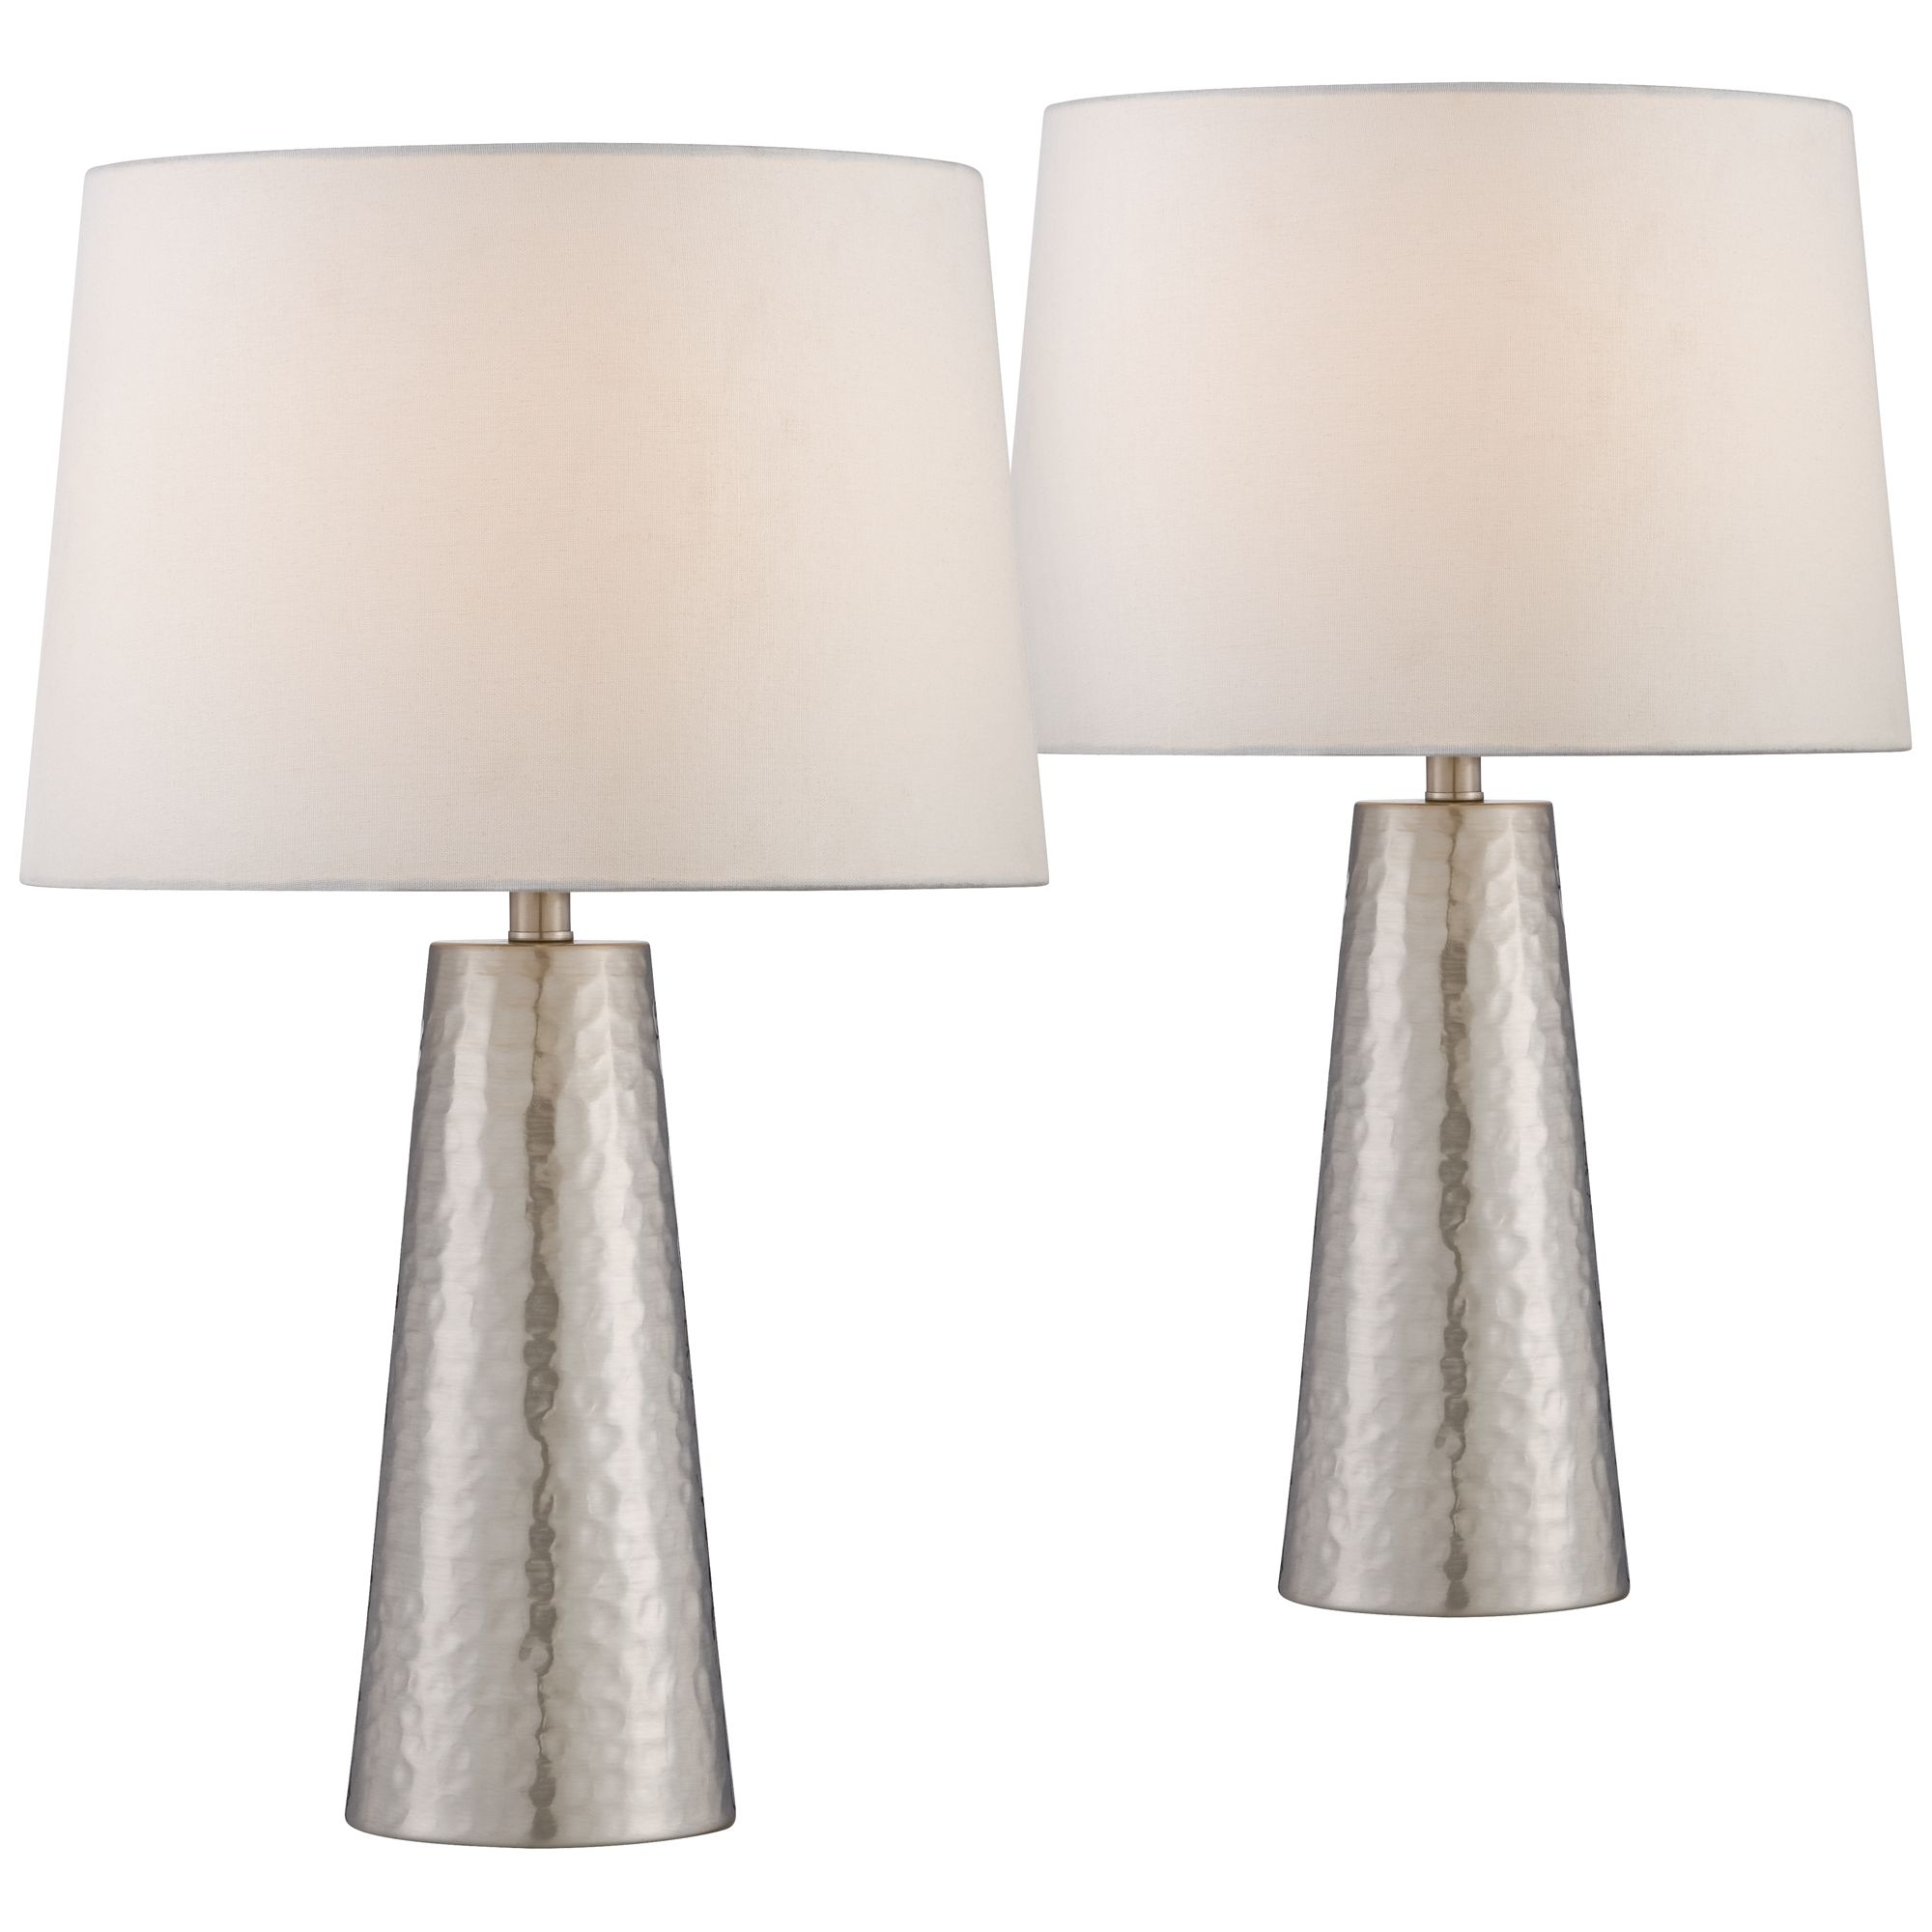 360 Lighting Modern Table Lamps Set Of 2 Silver Leaf Hammered Metal